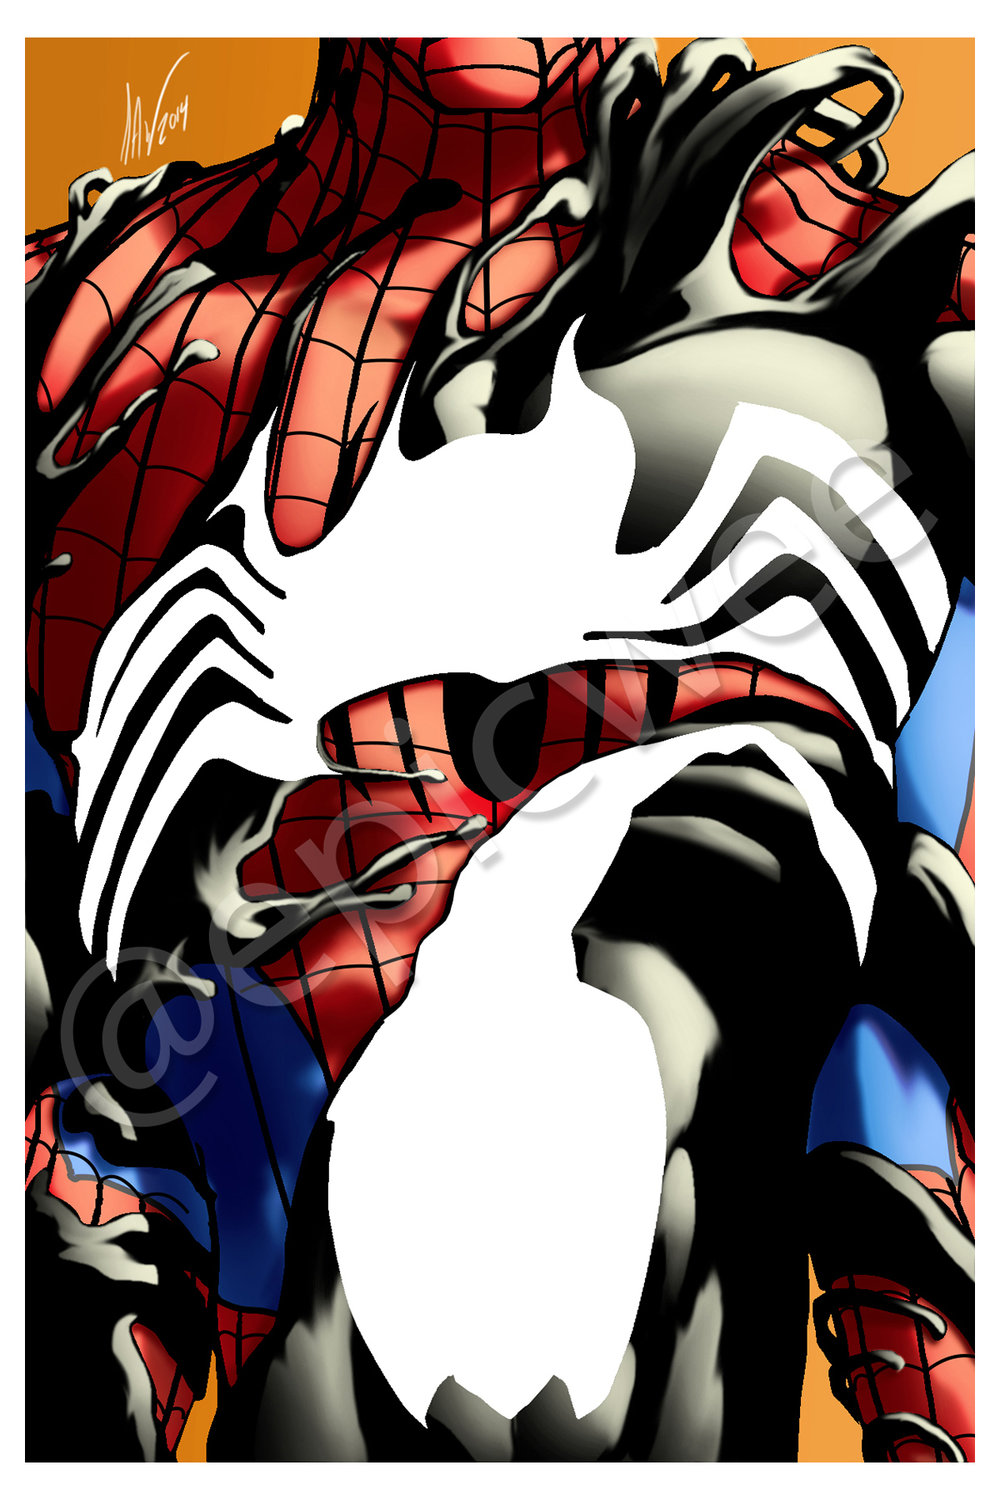 Spiderman-New Suit New Responsibilites 11x17 copy.jpg